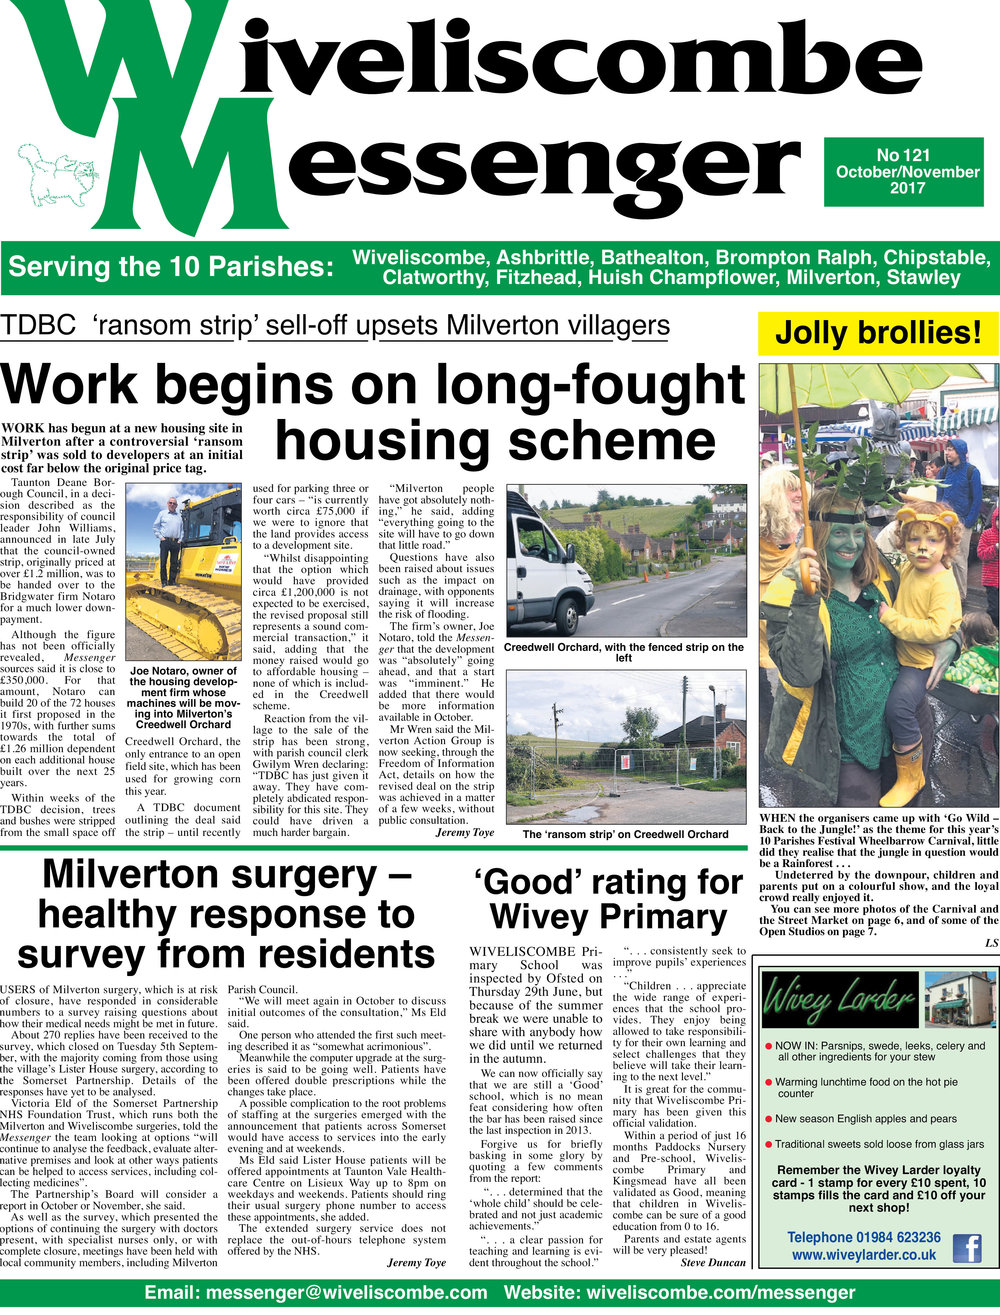 The front page of the latest edition of the  Wiveliscombe Messenger